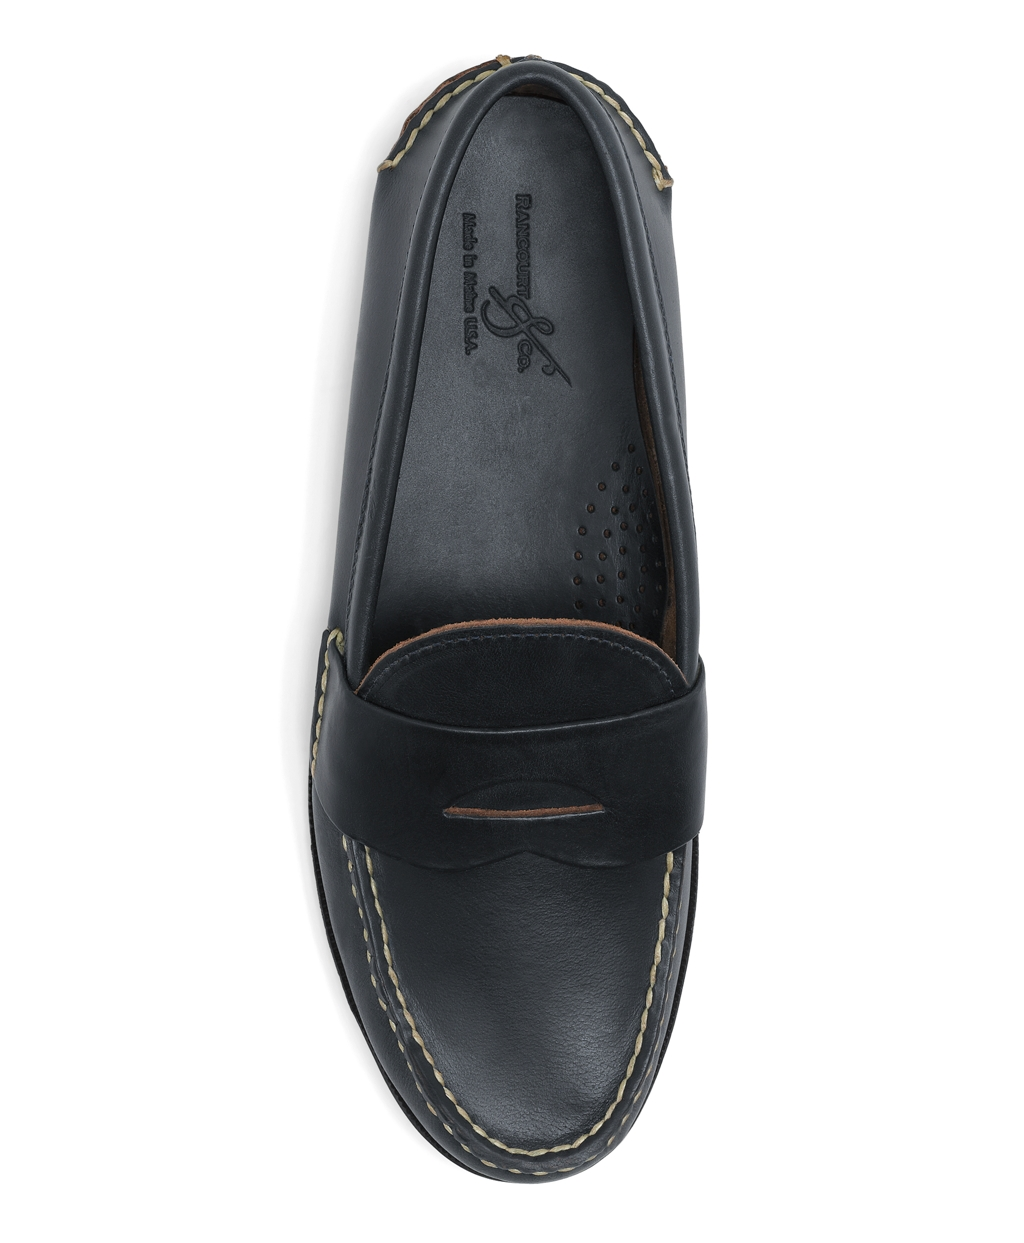 Mens Rancourt And Co Casual Penny Loafers Brooks Brothers D Island Shoes Oxford Genuine Leather Brown Navy